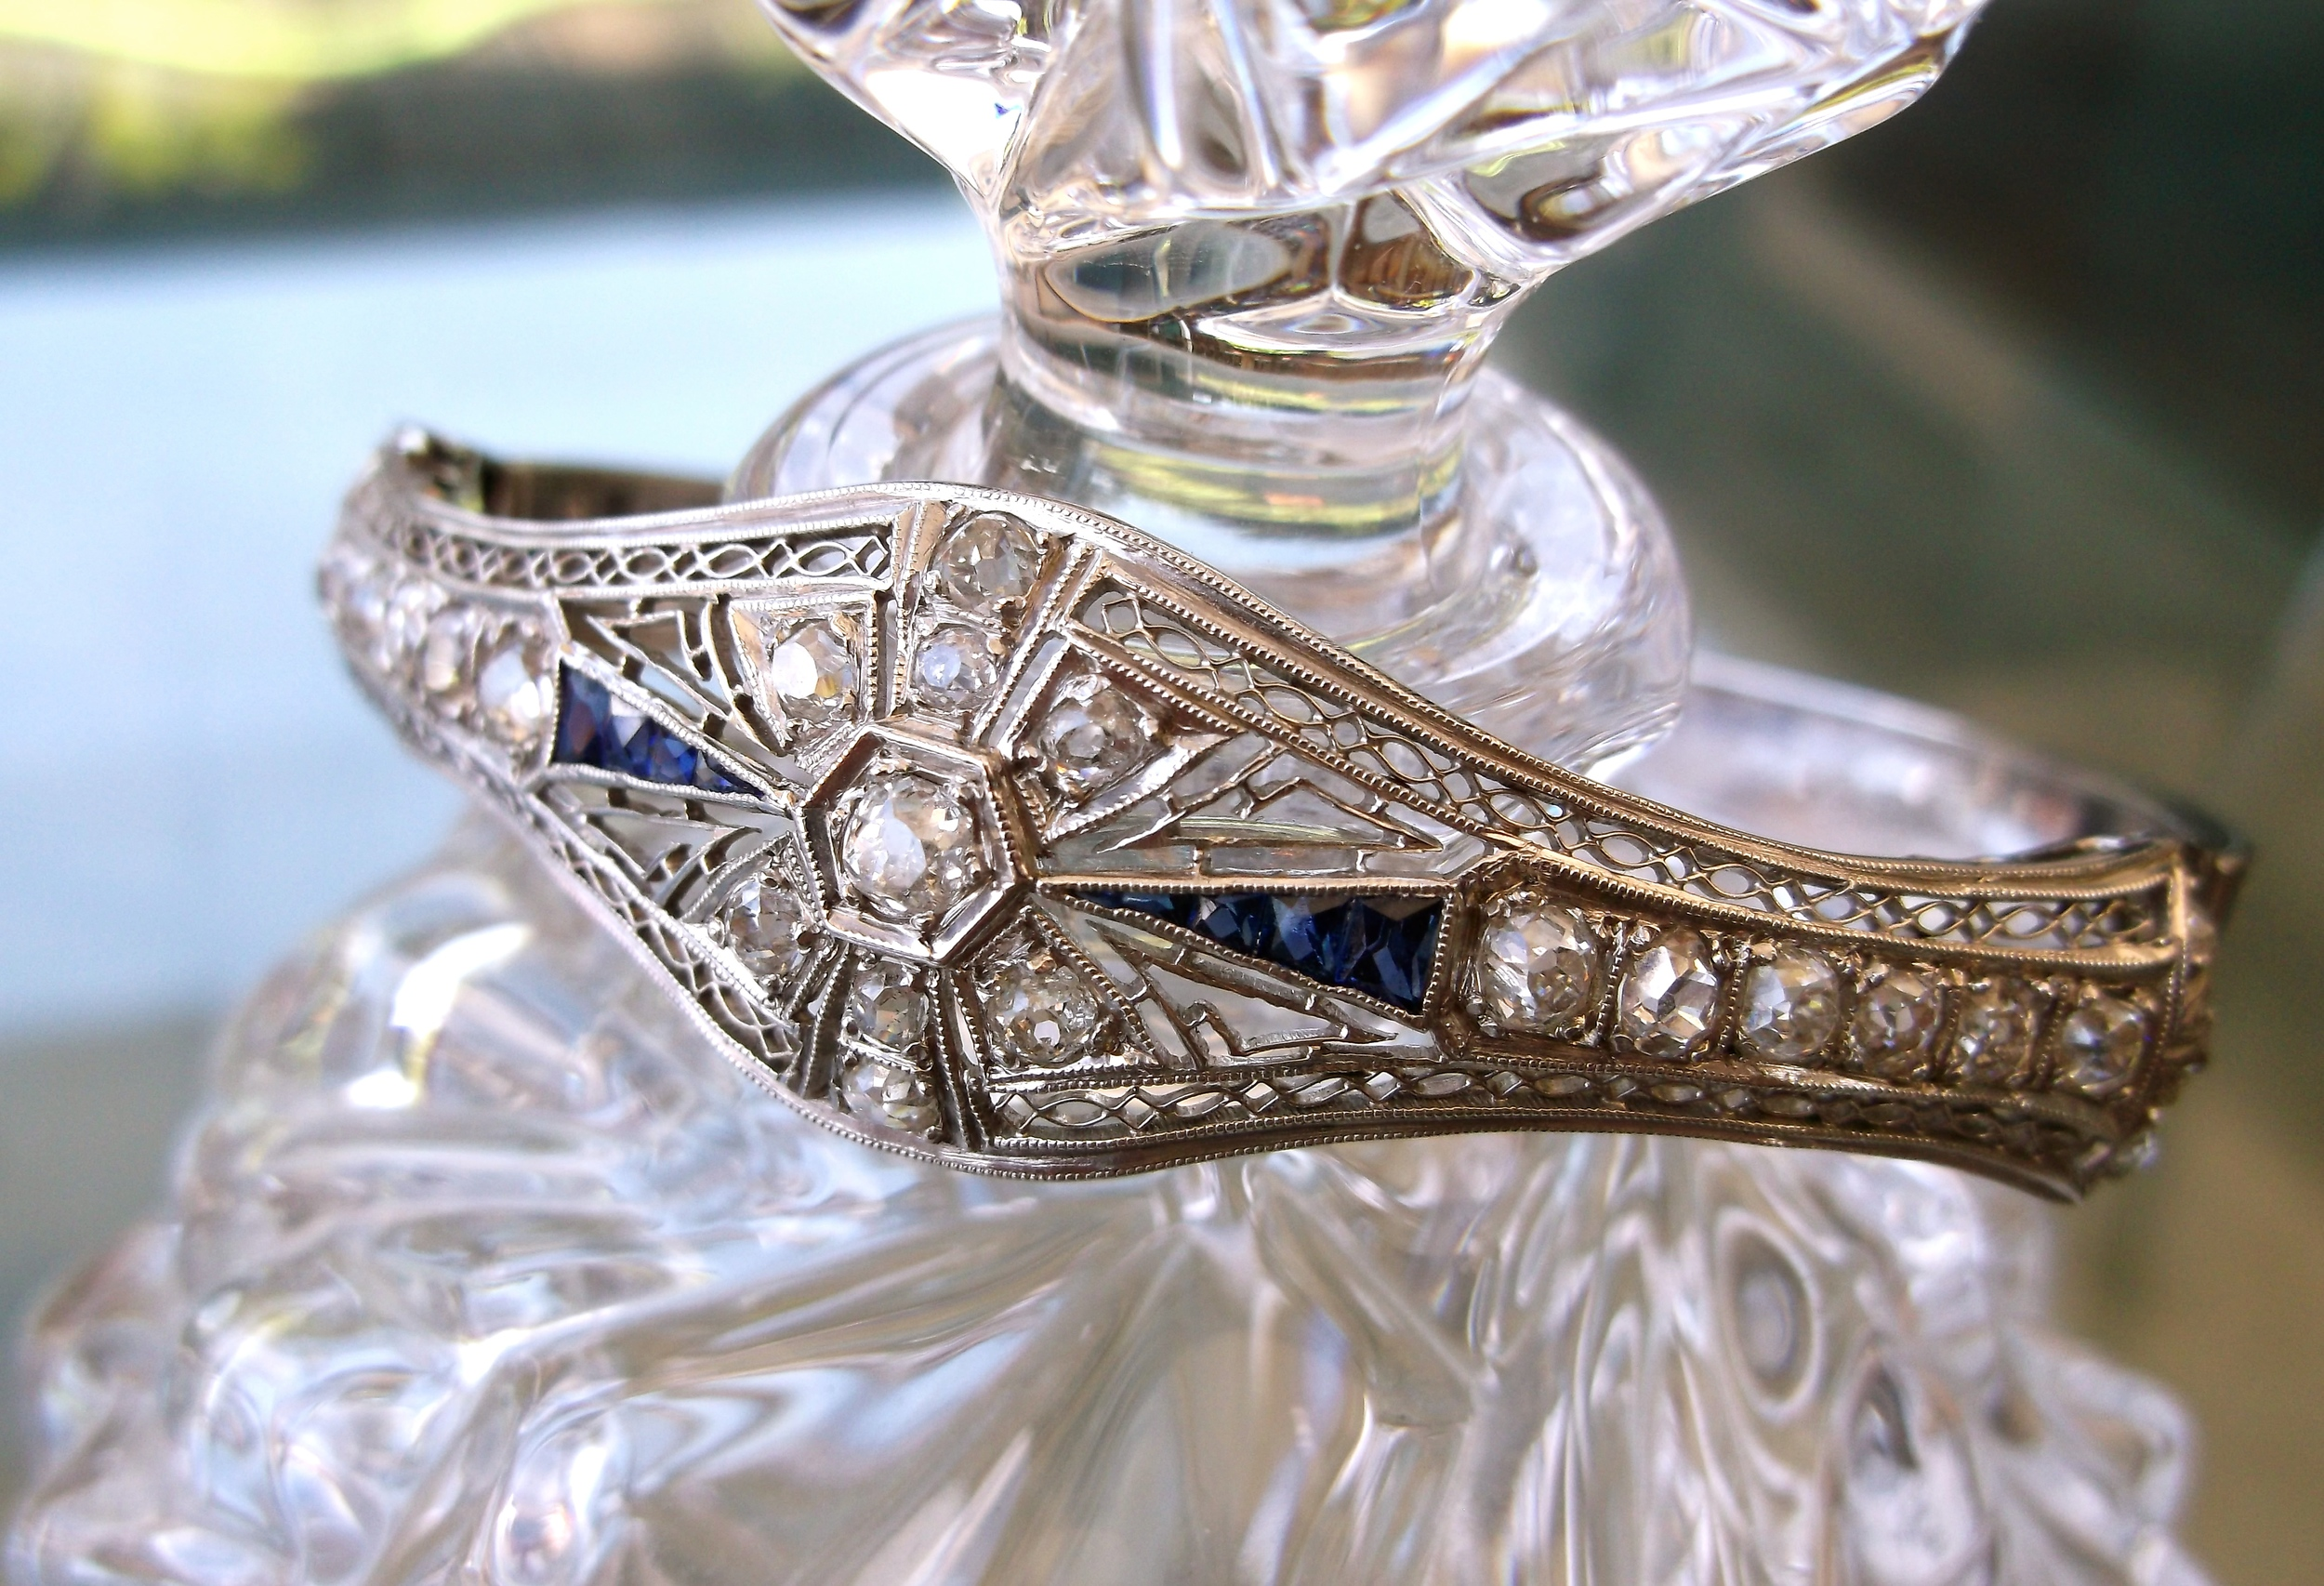 SOLD - Gorgeous Art Deco diamond and sapphire bangle bracelet set in white gold.